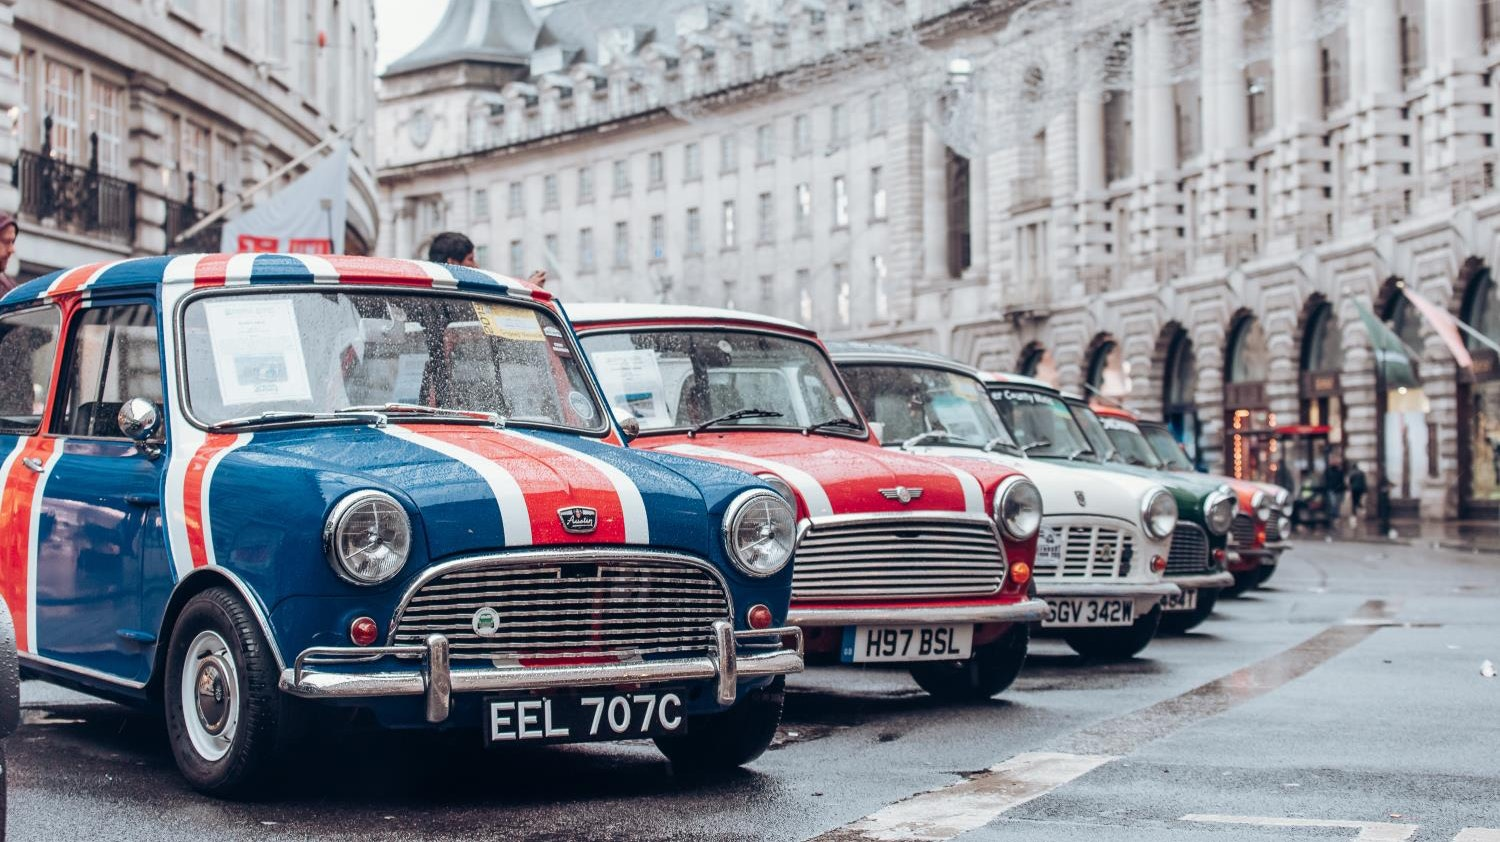 The best motoring events to attend in 2020